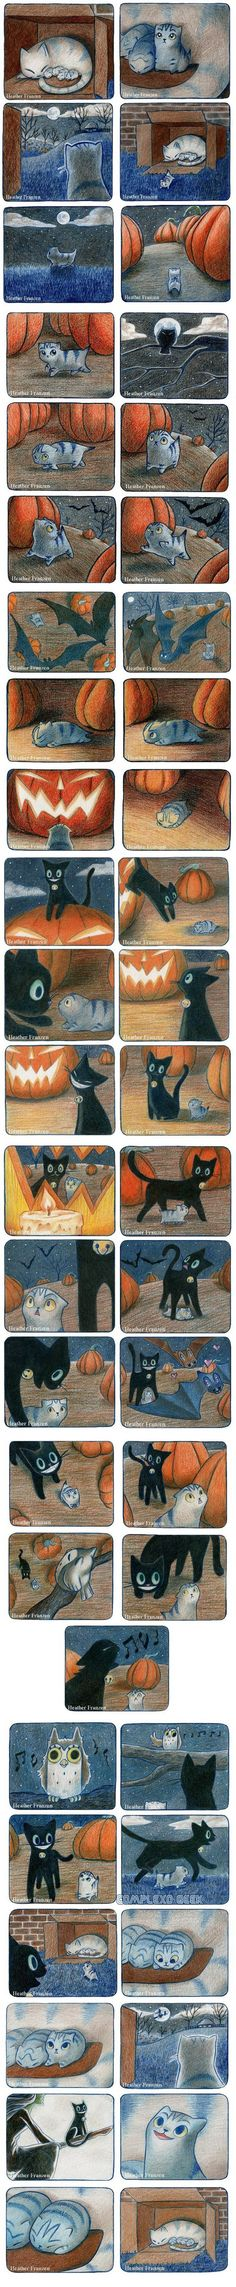 Petite histoire avec un chaton et un chat noir sur le thème d'Halloween. Small story with kitten and a black cat, on the theme of Halloween. so cute ! Crazy Cat Lady, Crazy Cats, I Love Cats, Cute Cats, Funny Animals, Cute Animals, The Meta Picture, Cute Stories, Short Stories